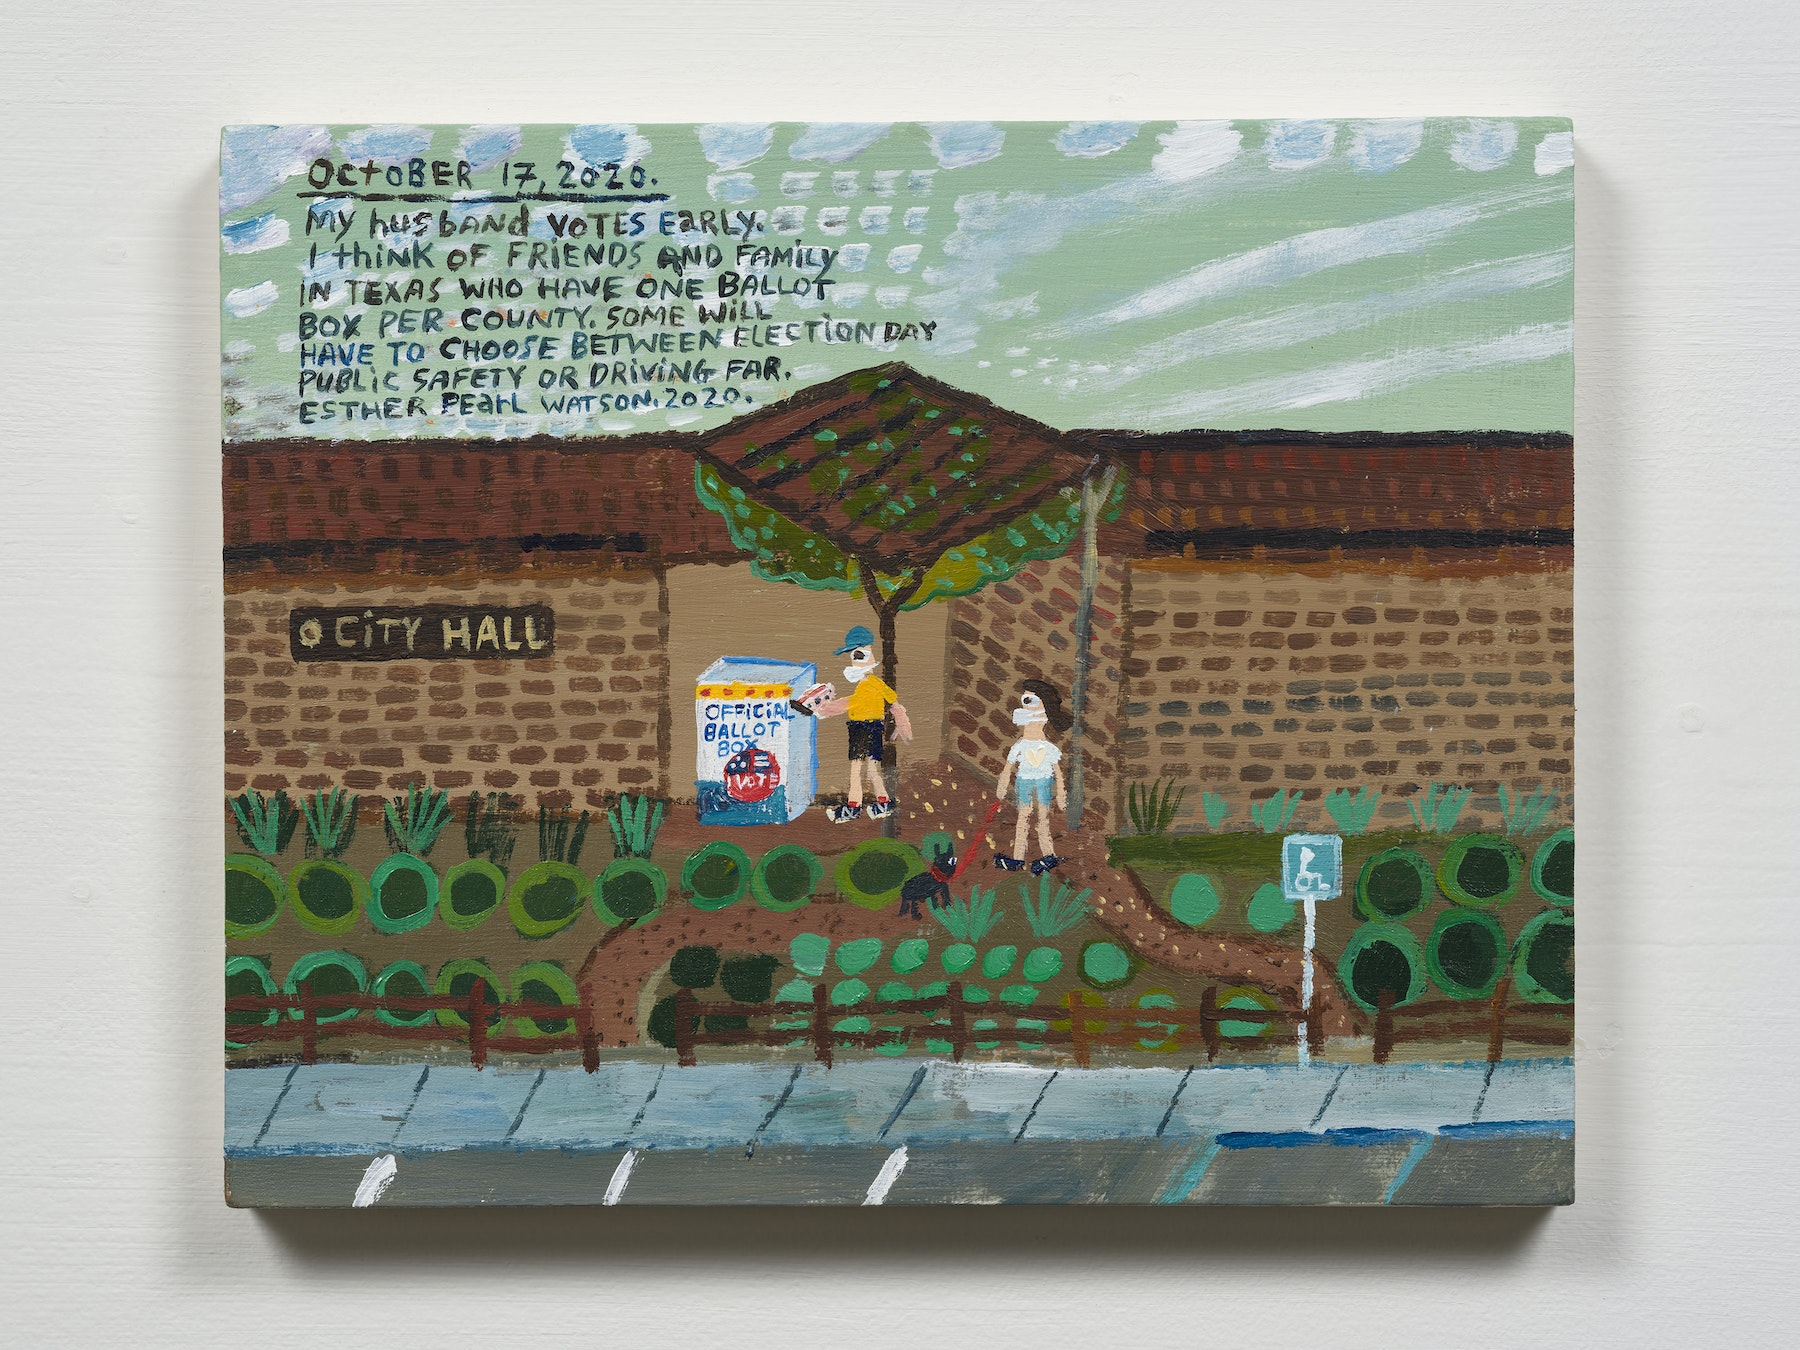 """Esther Pearl Watson """"October 17, City Hall Ballot Box,"""" 2020 Acrylic with pencil on panel 8 x 10"""" [HxW] (20.32 x 25.4 cm) Inventory #EPW353 Courtesy of the artist and Vielmetter Los Angeles Photo credit: Jeff Mclane"""